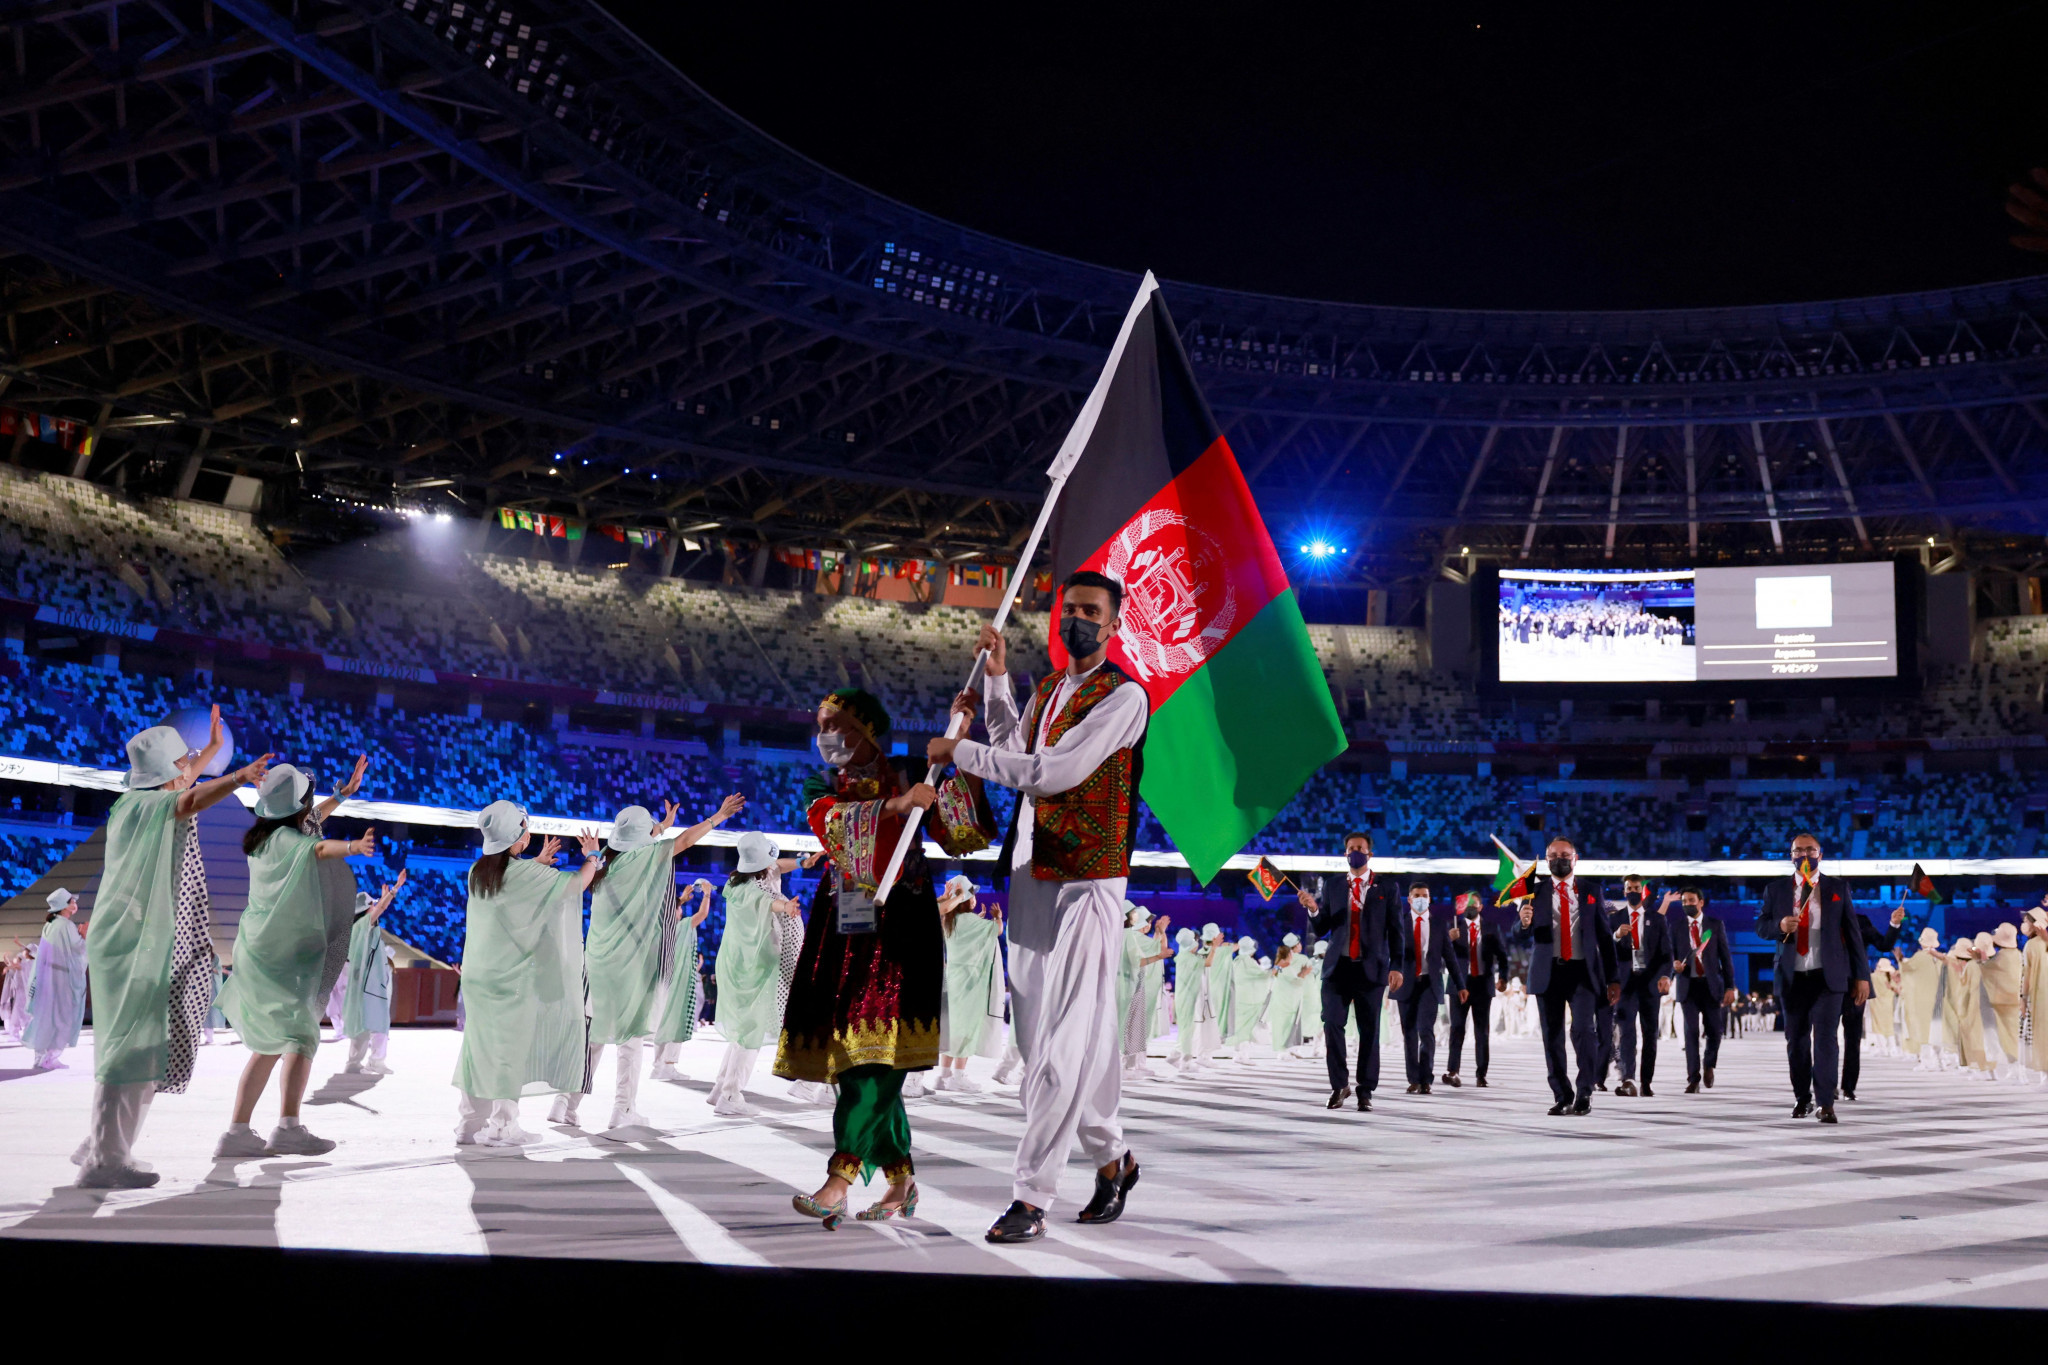 Bach praises response of Olympic community to Afghanistan crisis with more than 100 assisted in leaving nation